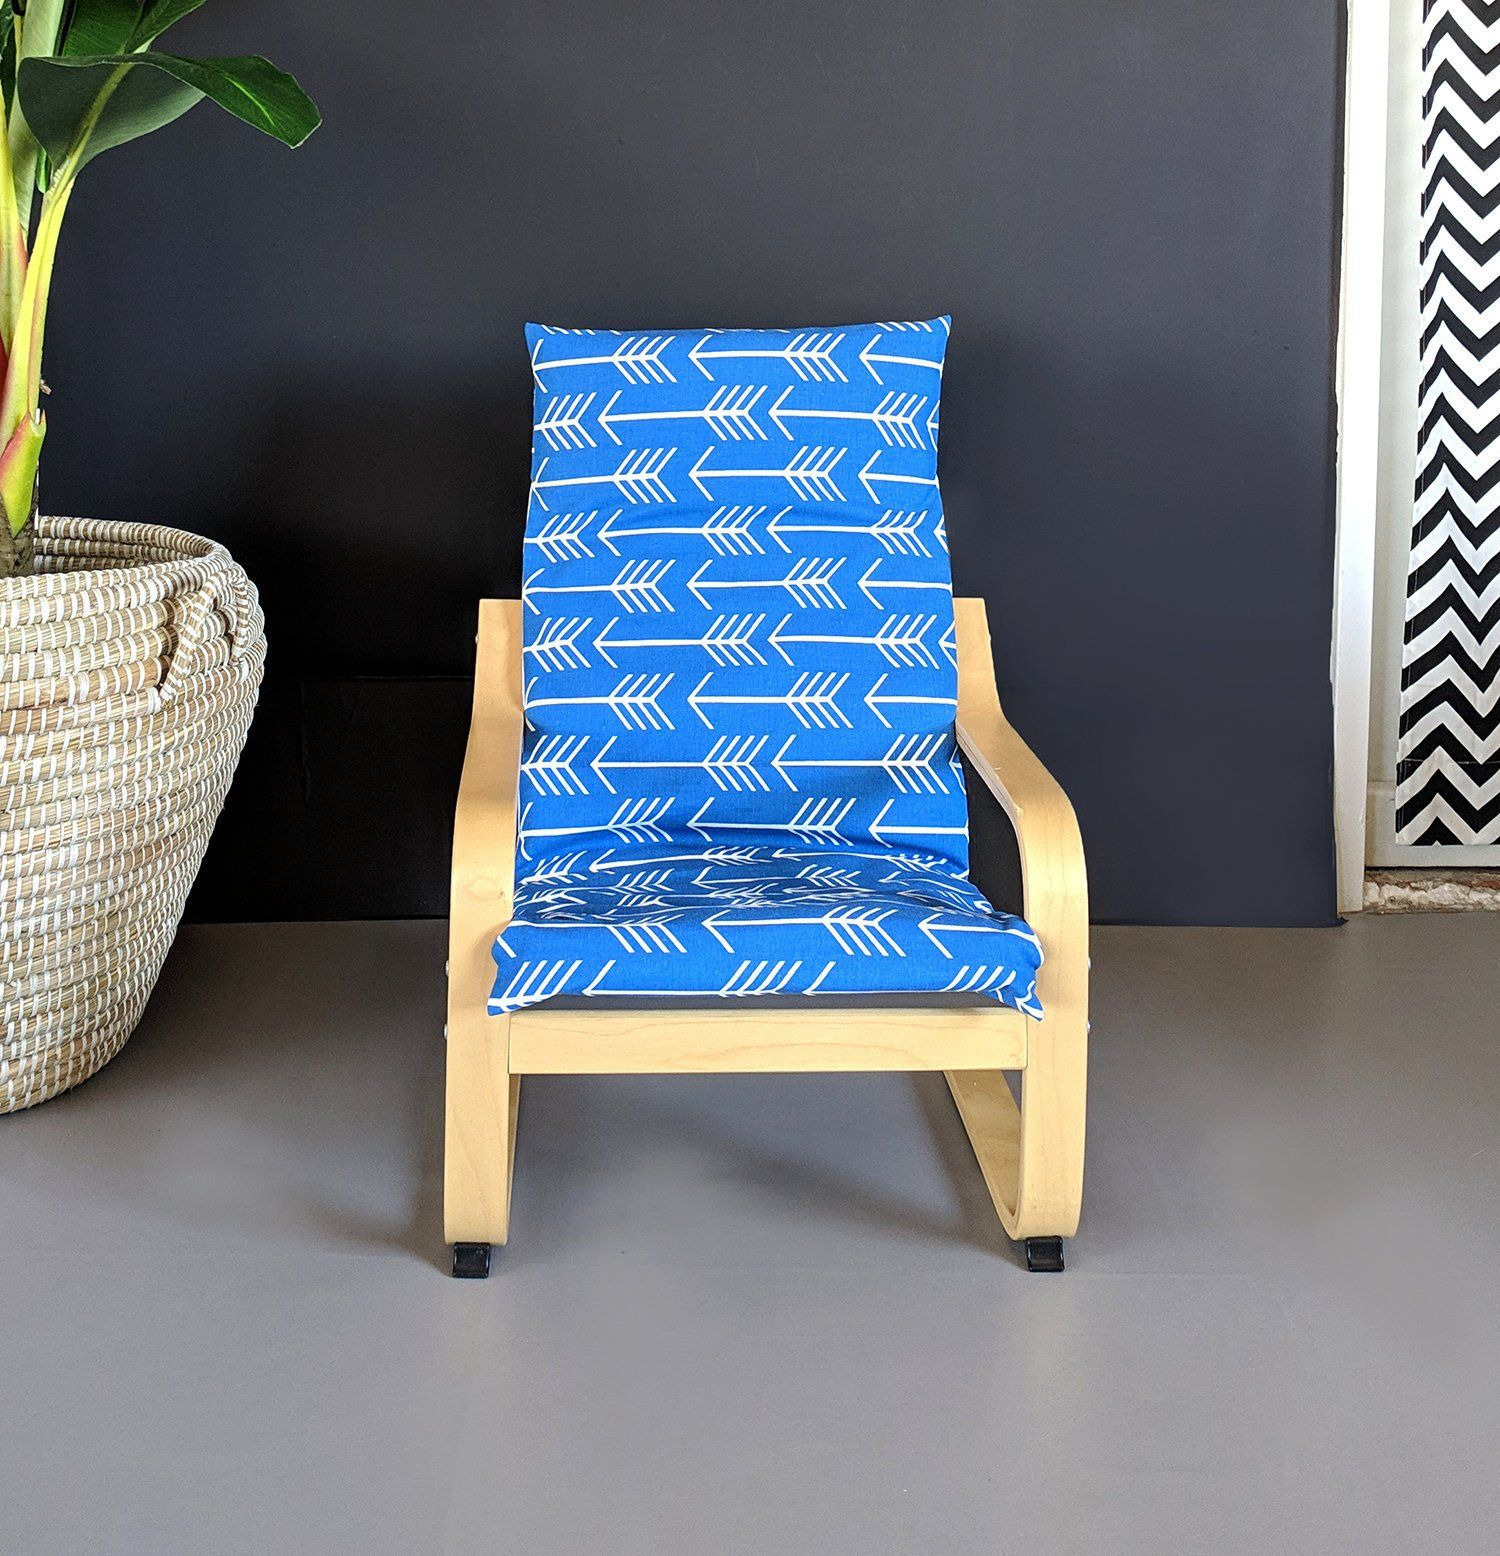 Bright Blue Arrow Print Ikea Kids Poang Seat Cover Slipcovers